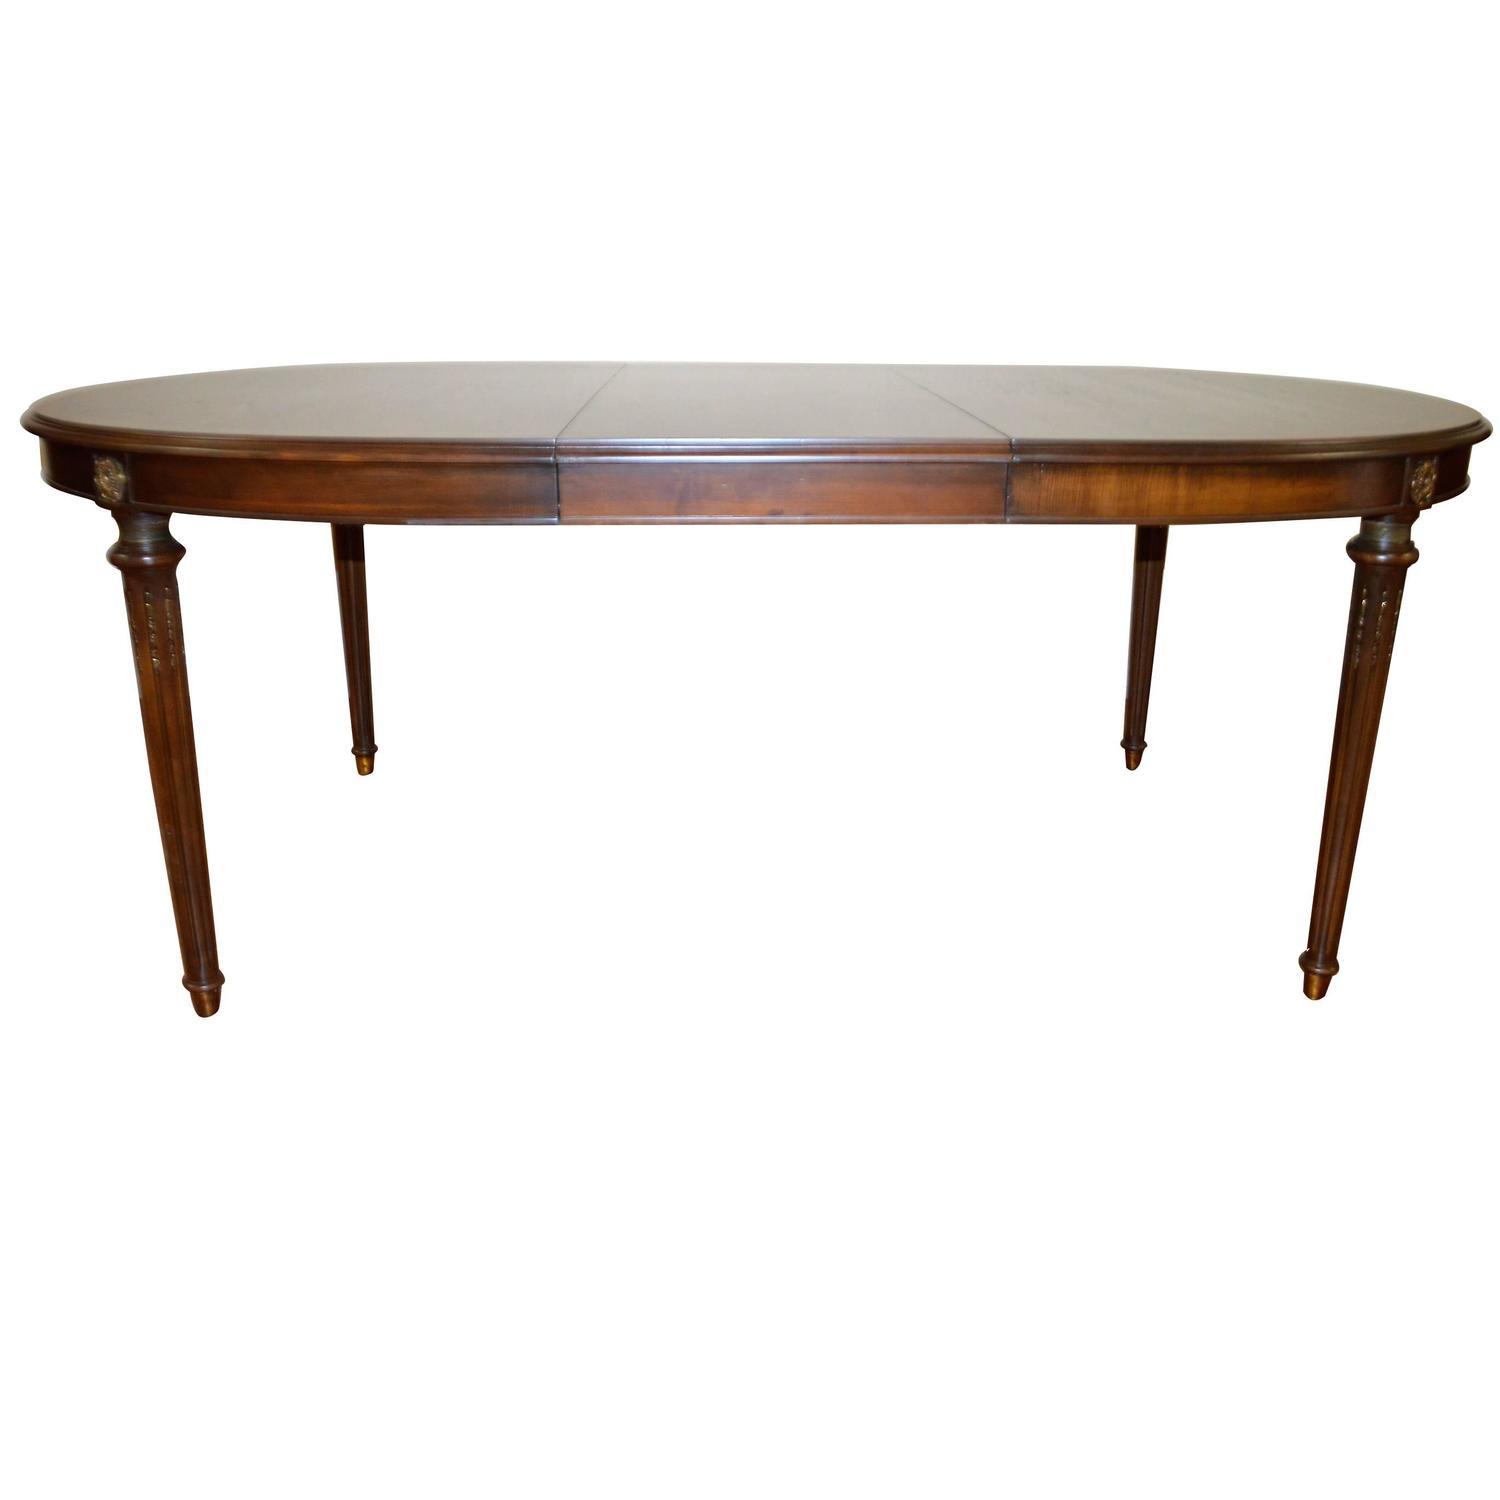 louis xvi style walnut dining table at 1stdibs. Black Bedroom Furniture Sets. Home Design Ideas